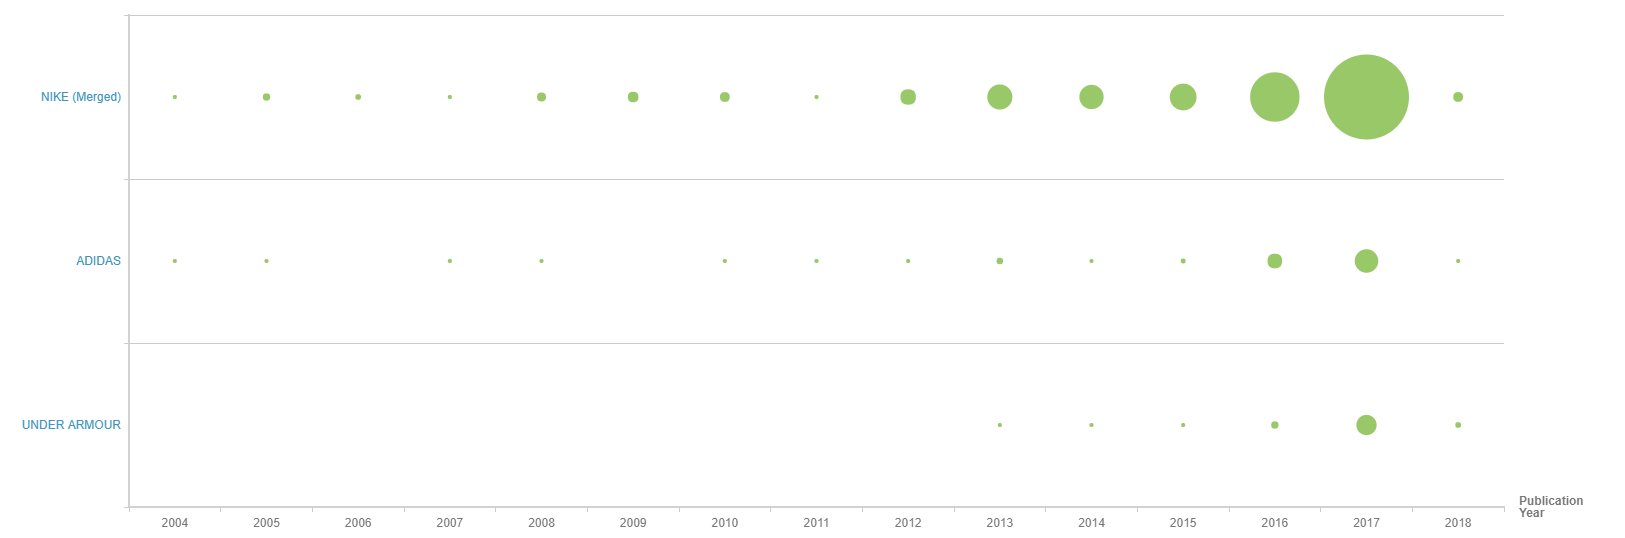 Increase in science driven patenting from Nike, Adidas and Under Armour